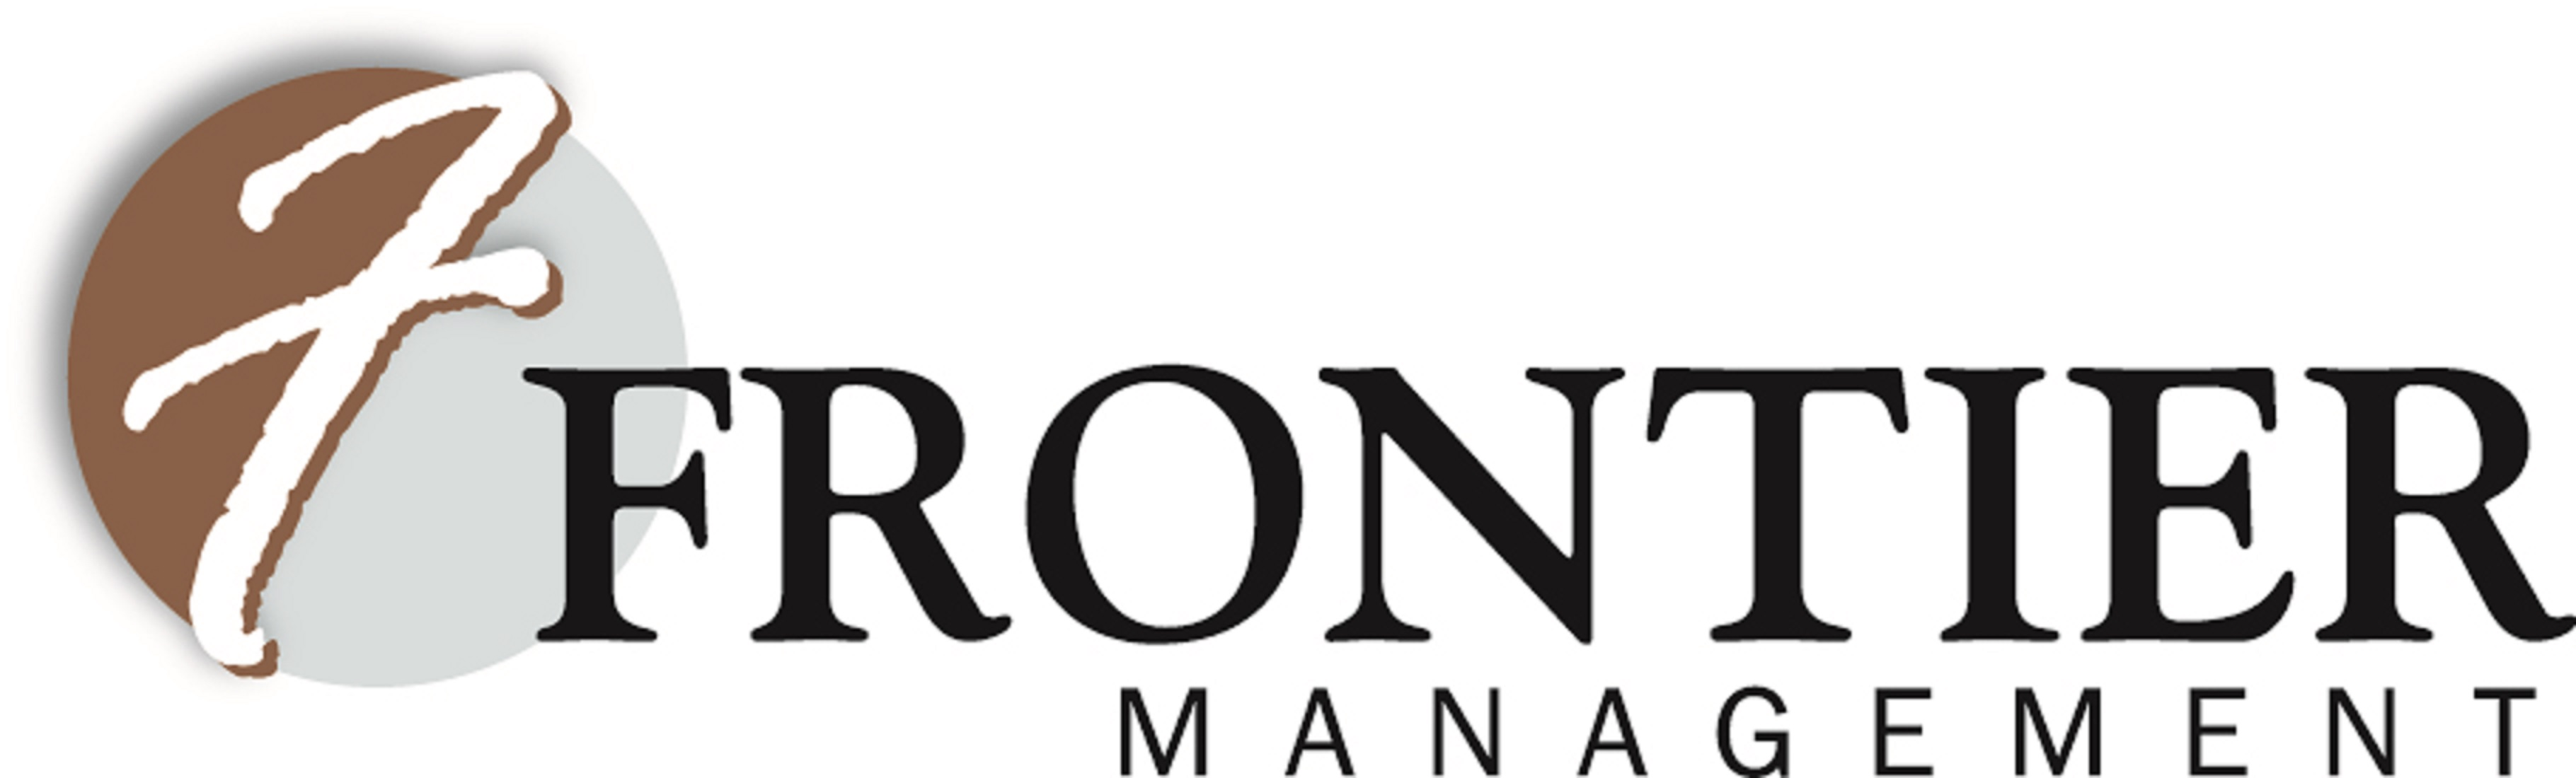 #1 Frontier Management Logo (Statewide Presenting )